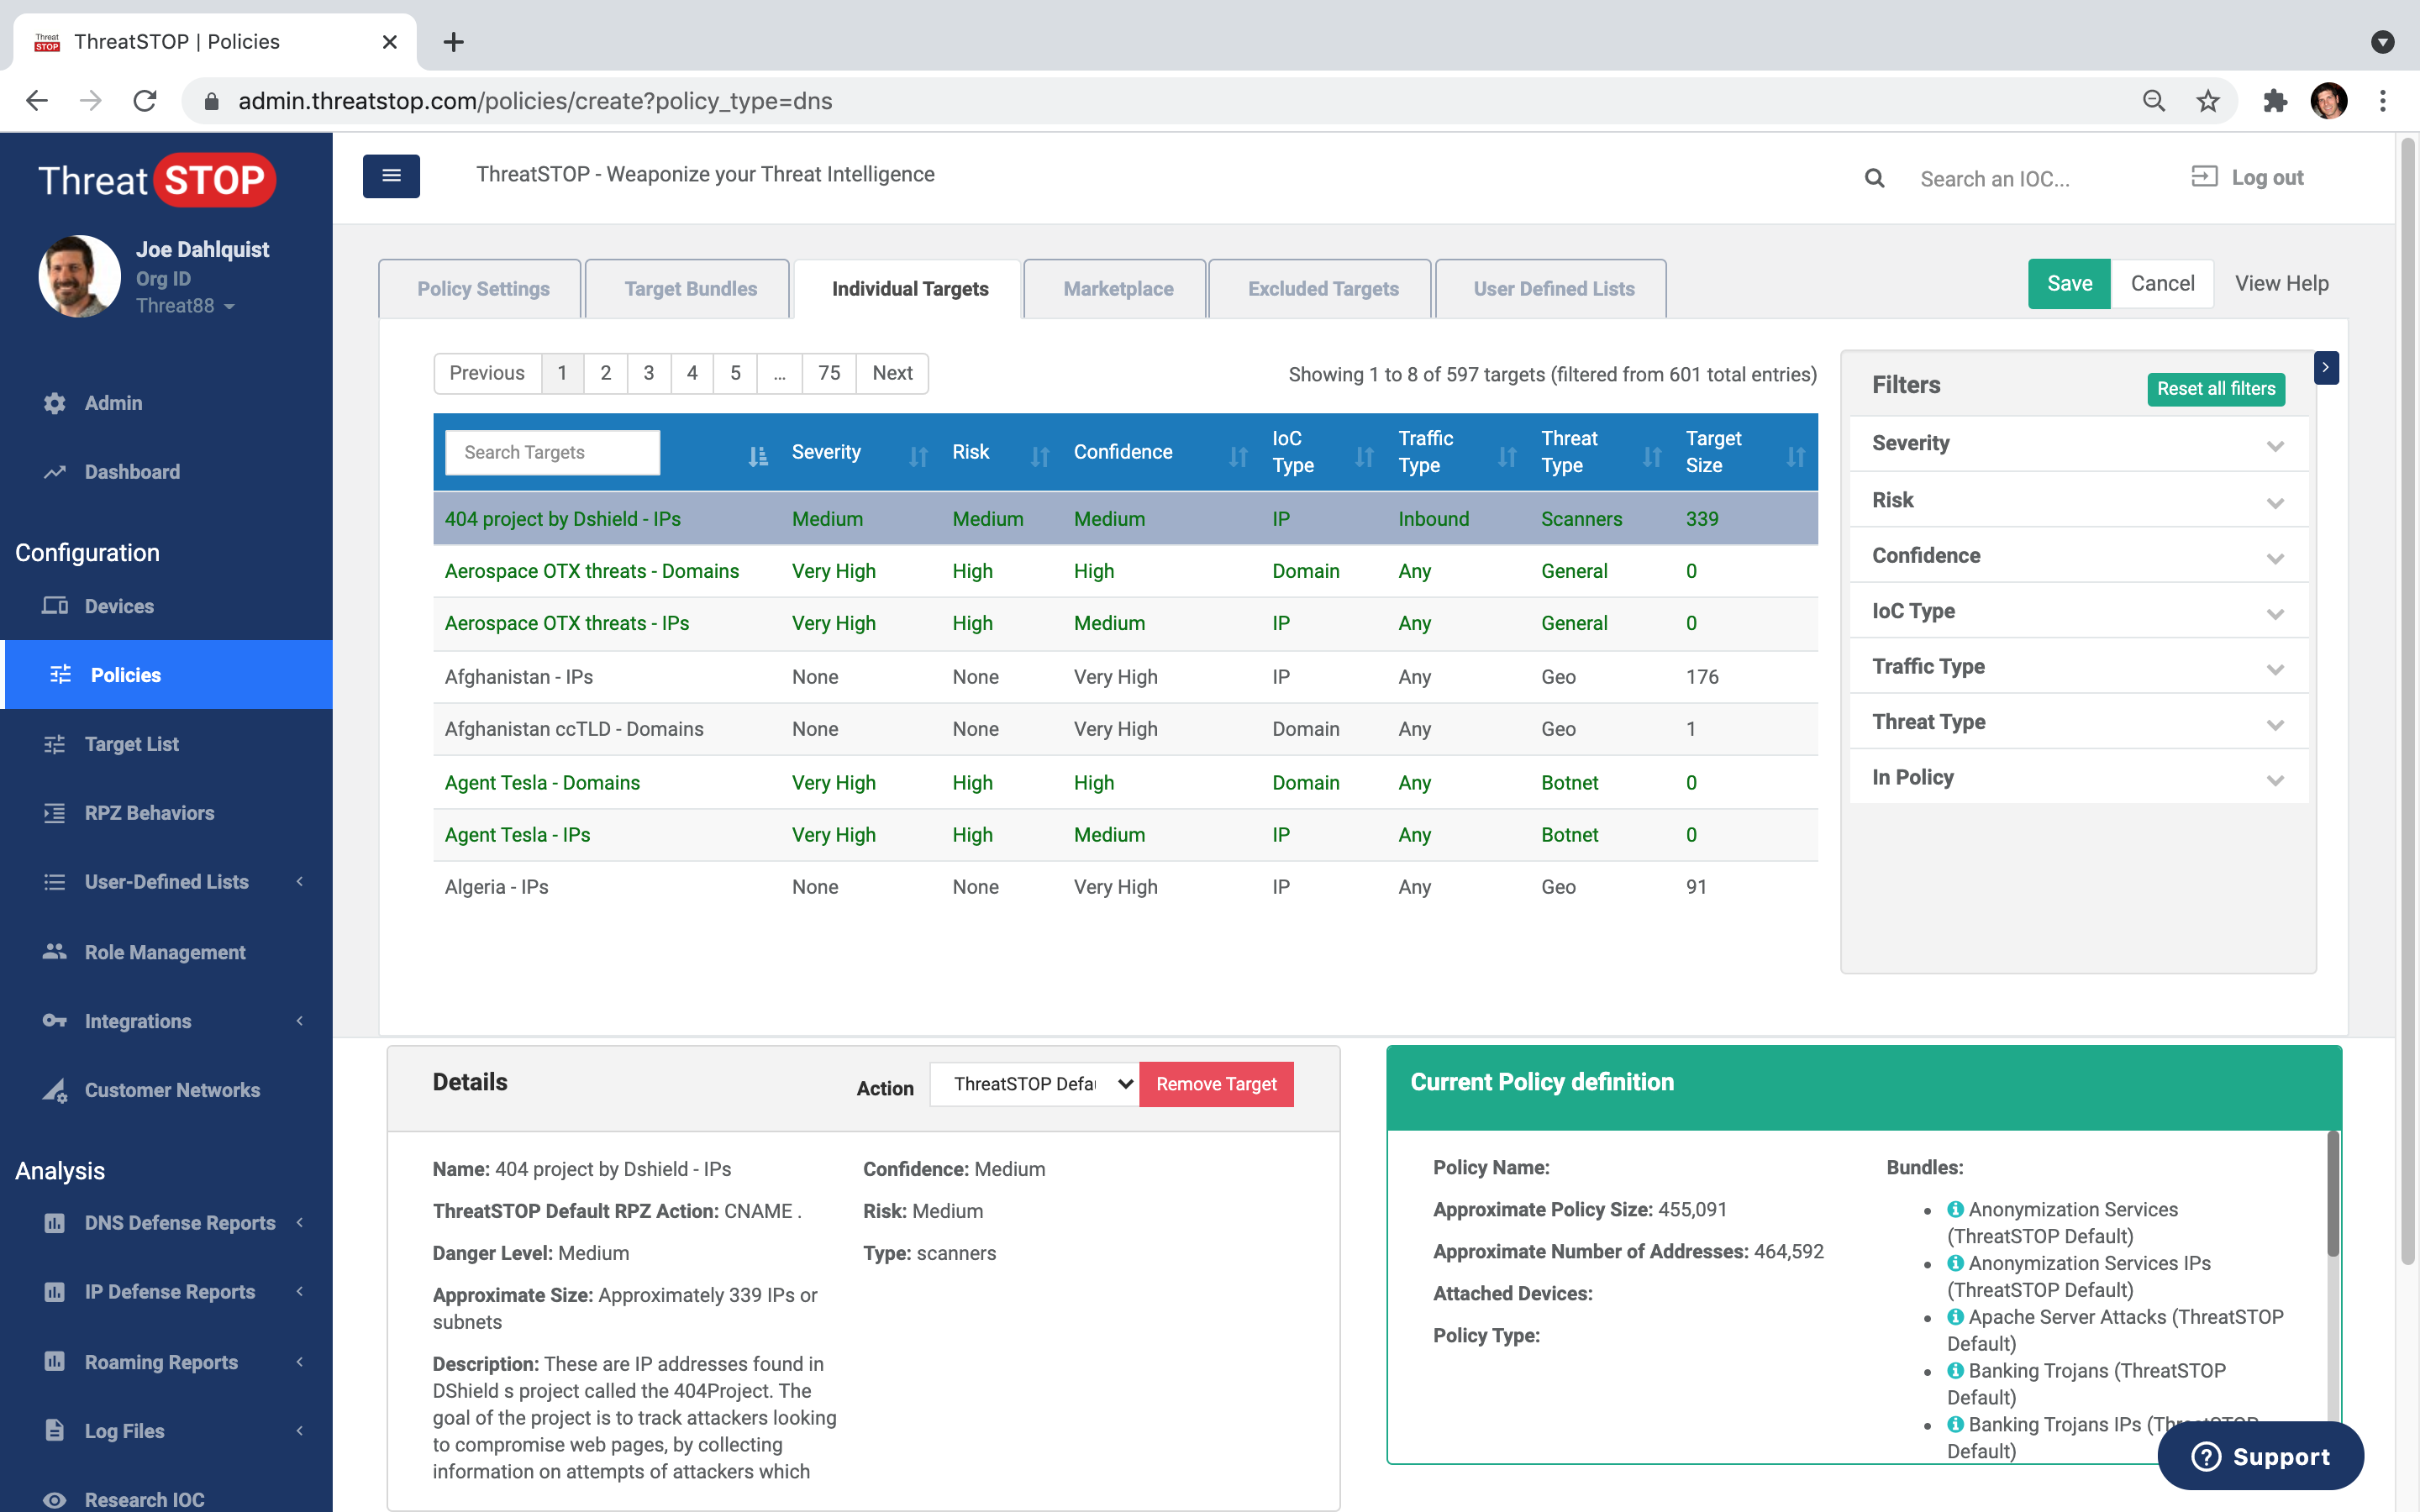 Policy Management UI